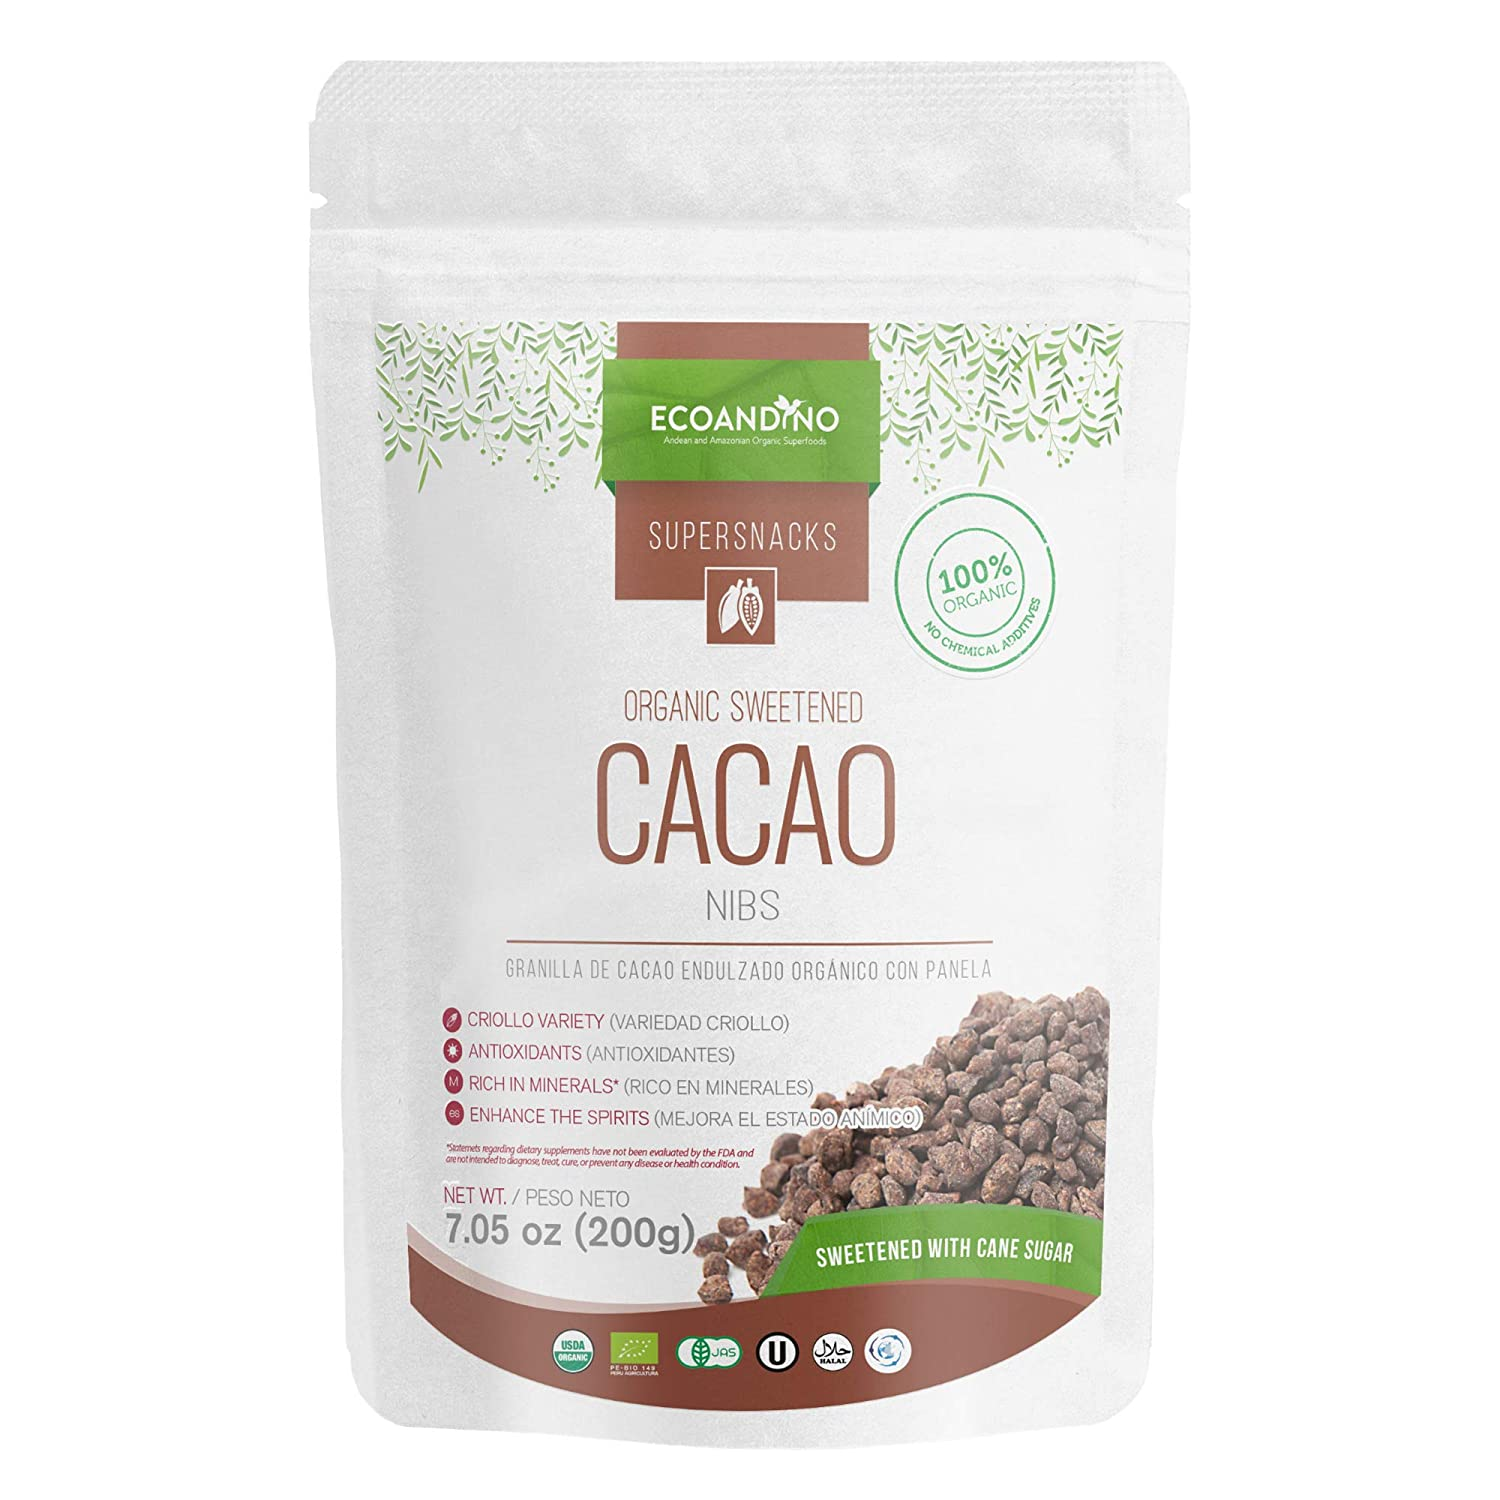 Amazon.com : Ecoandino Organic Sweetened Cacao Nibs 7.05 oz (200 grams) (Pack of 3 with a Total of 21 .15 oz (1 lb 5 oz) in 3 independent Resealable Doypack ...